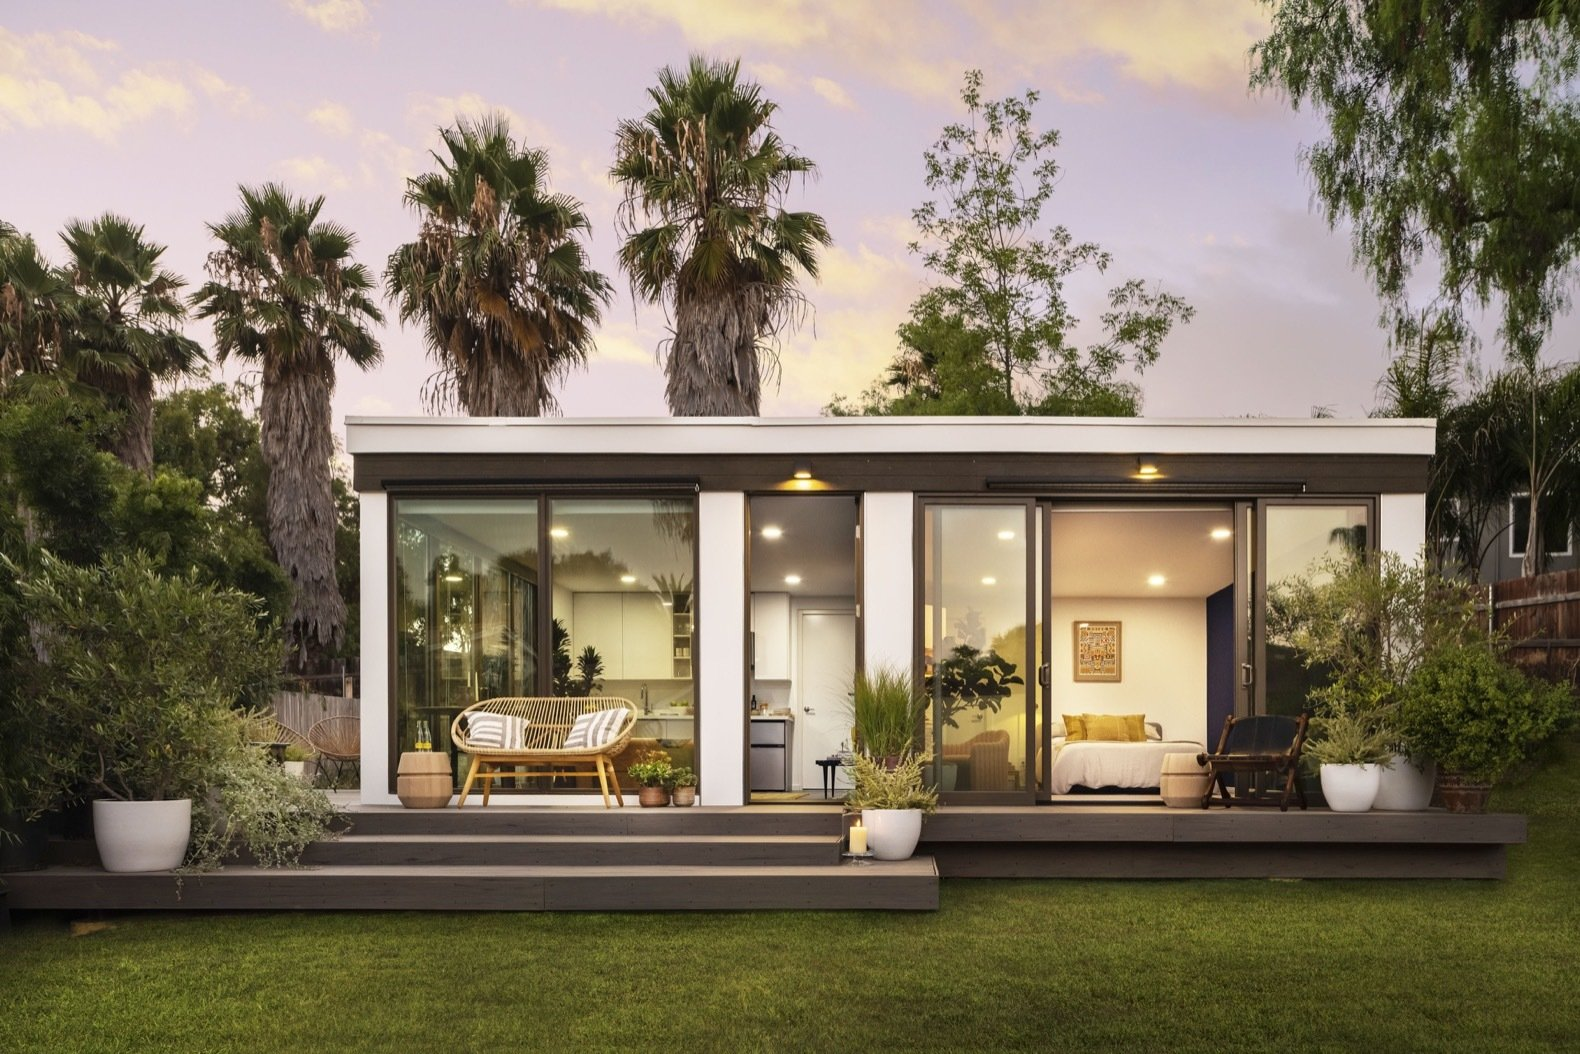 Mighty Buildings Makes Stylish, 3D-Printed Prefabs Starting at $115K